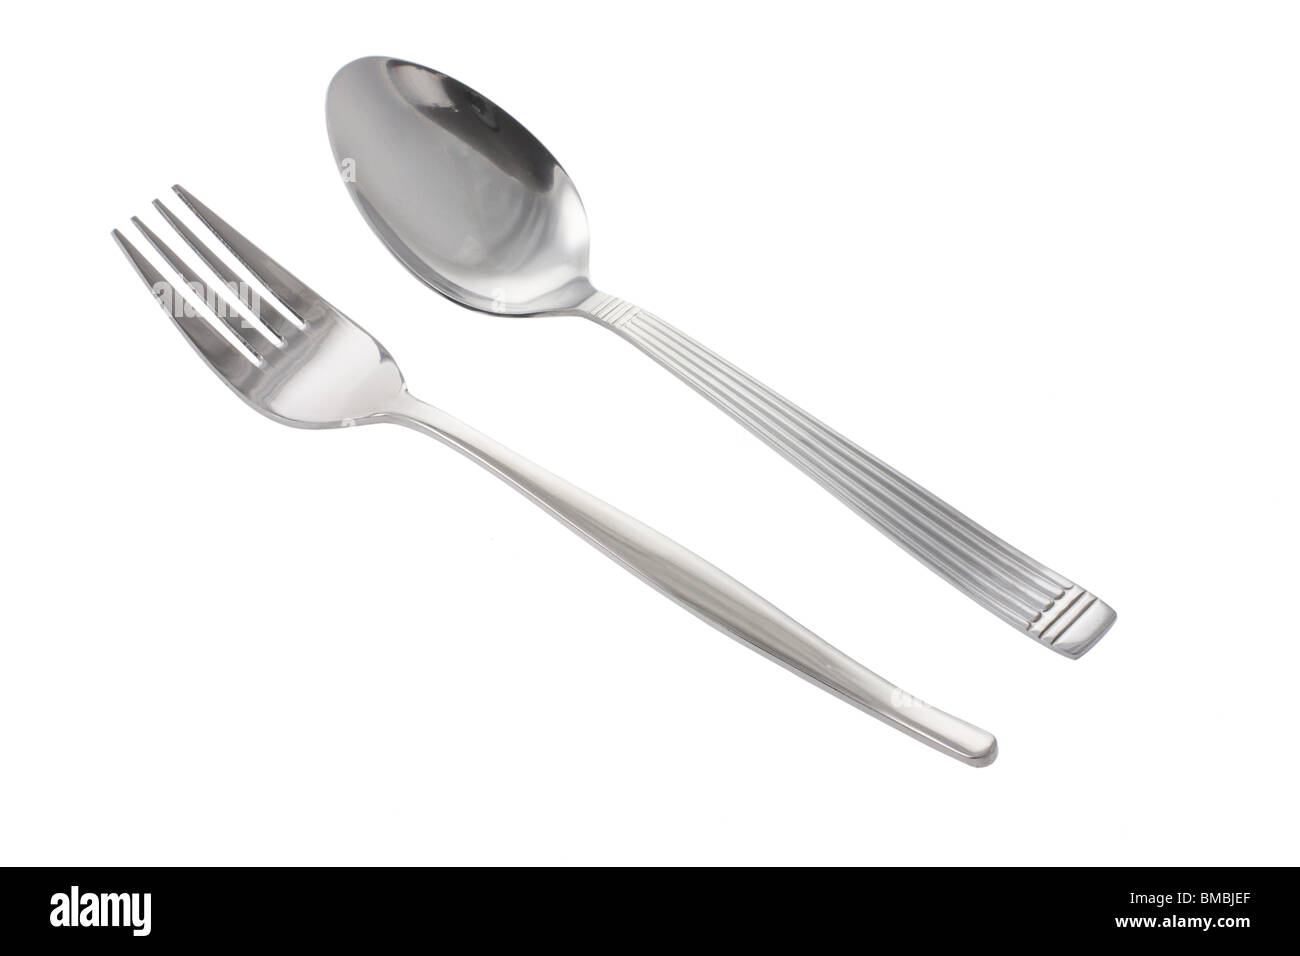 Fork and Spoon - Stock Image